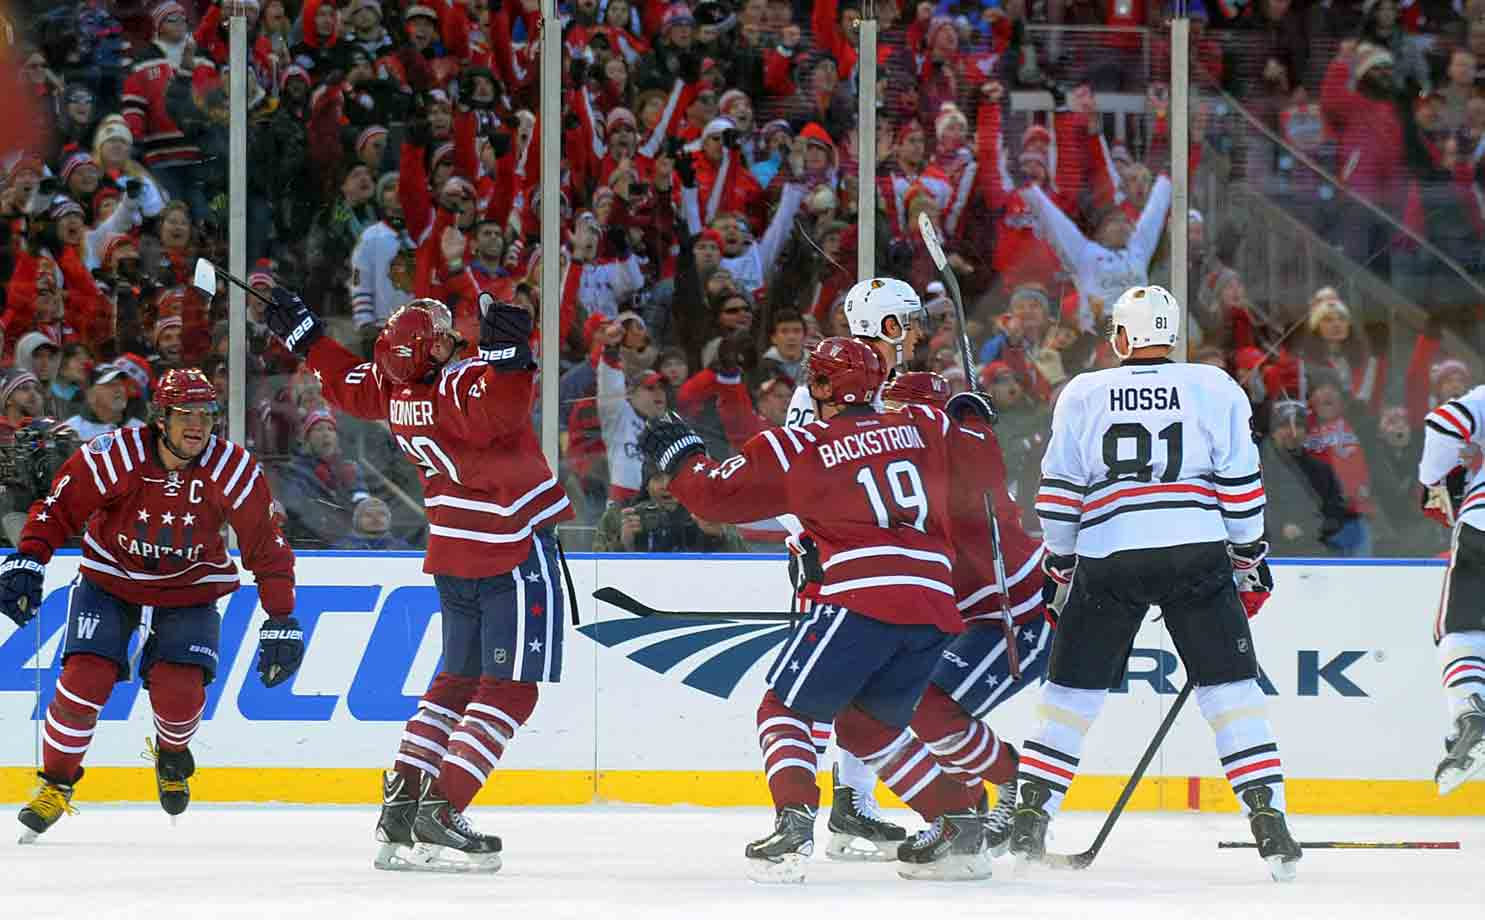 With 12.9 seconds left in regulation, Troy Brouwer delivered the game-winning goal for the Capitals. The ending was even more special as Brouwer's father, who had been recovering from a stroke, attended the game—the first time he had seen his son play in Washington.